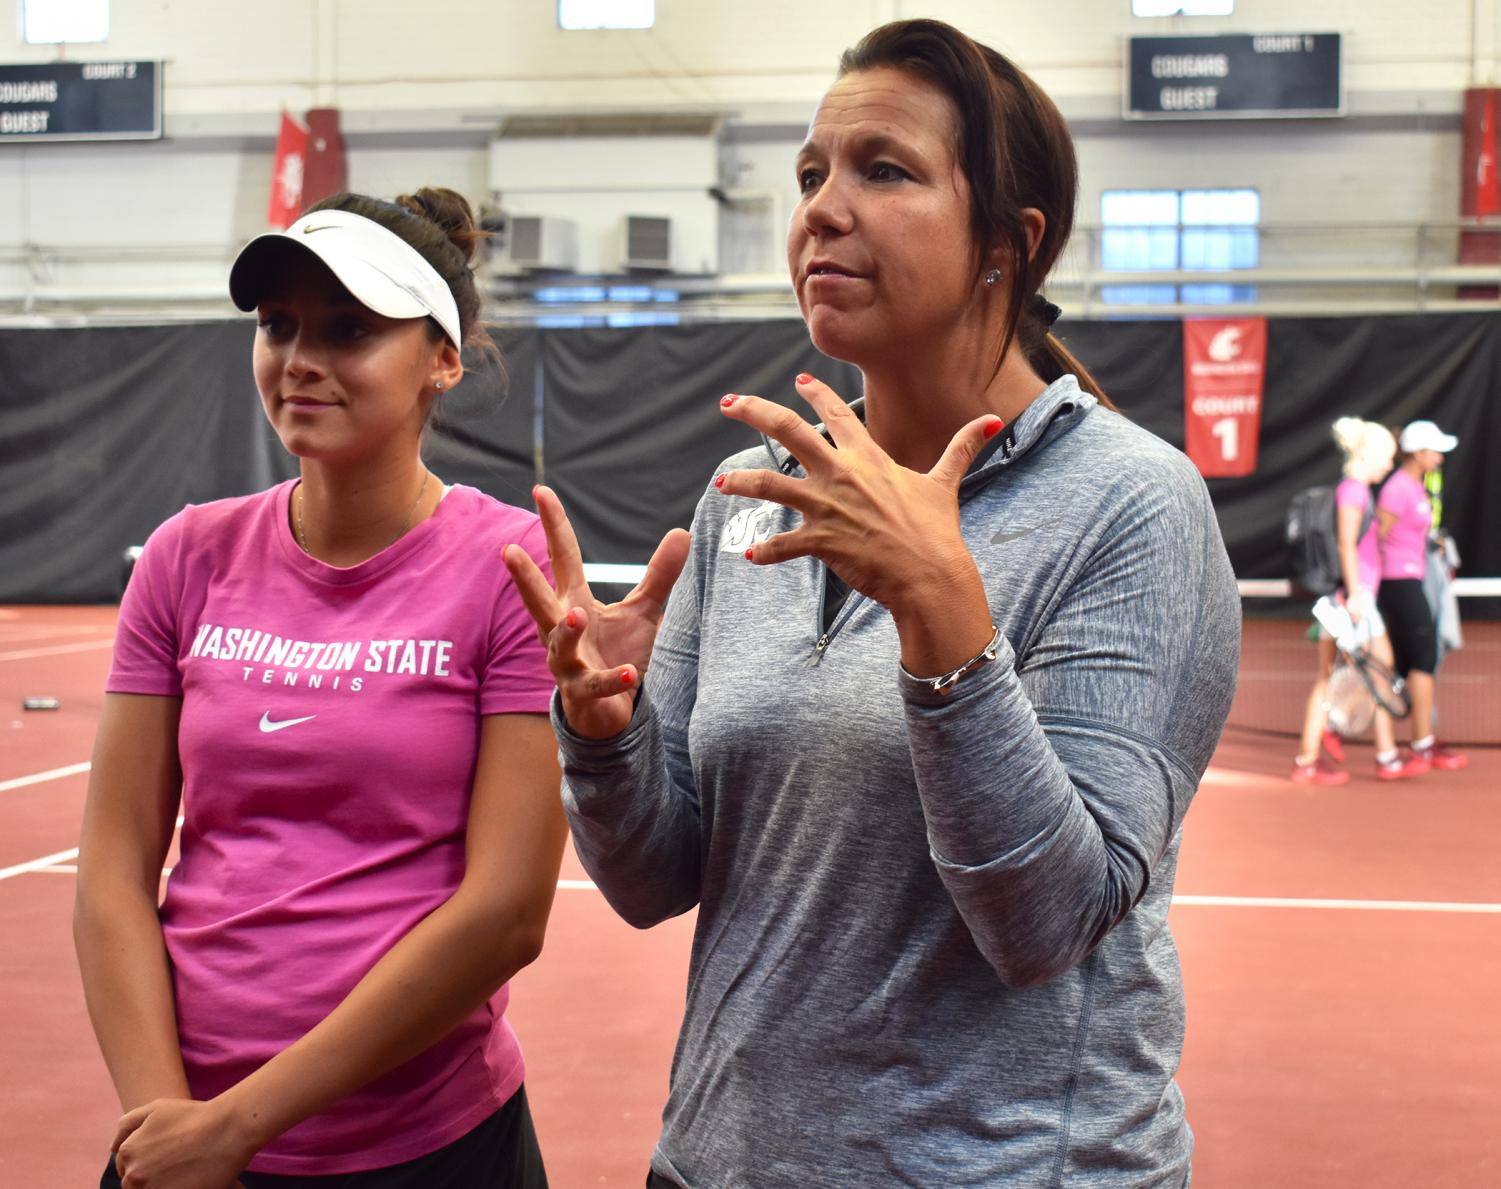 WSU women's tennis Head Coach Lisa Hart, right, discusses sophomore player Melisa Ates and her contributions to the team.